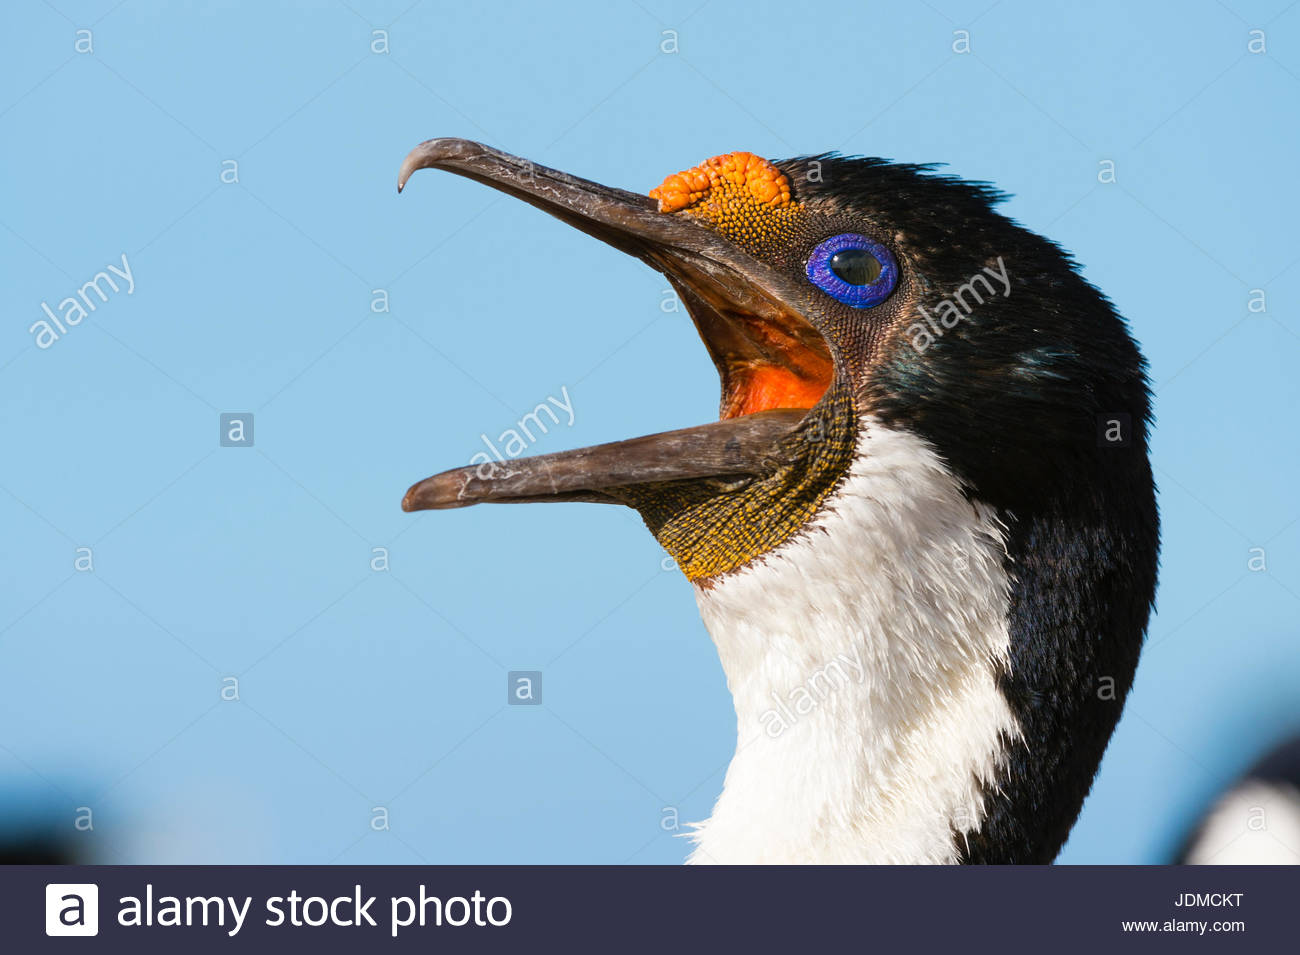 Portrait of an imperial shag, Leucocarbo atriceps. - Stock Image